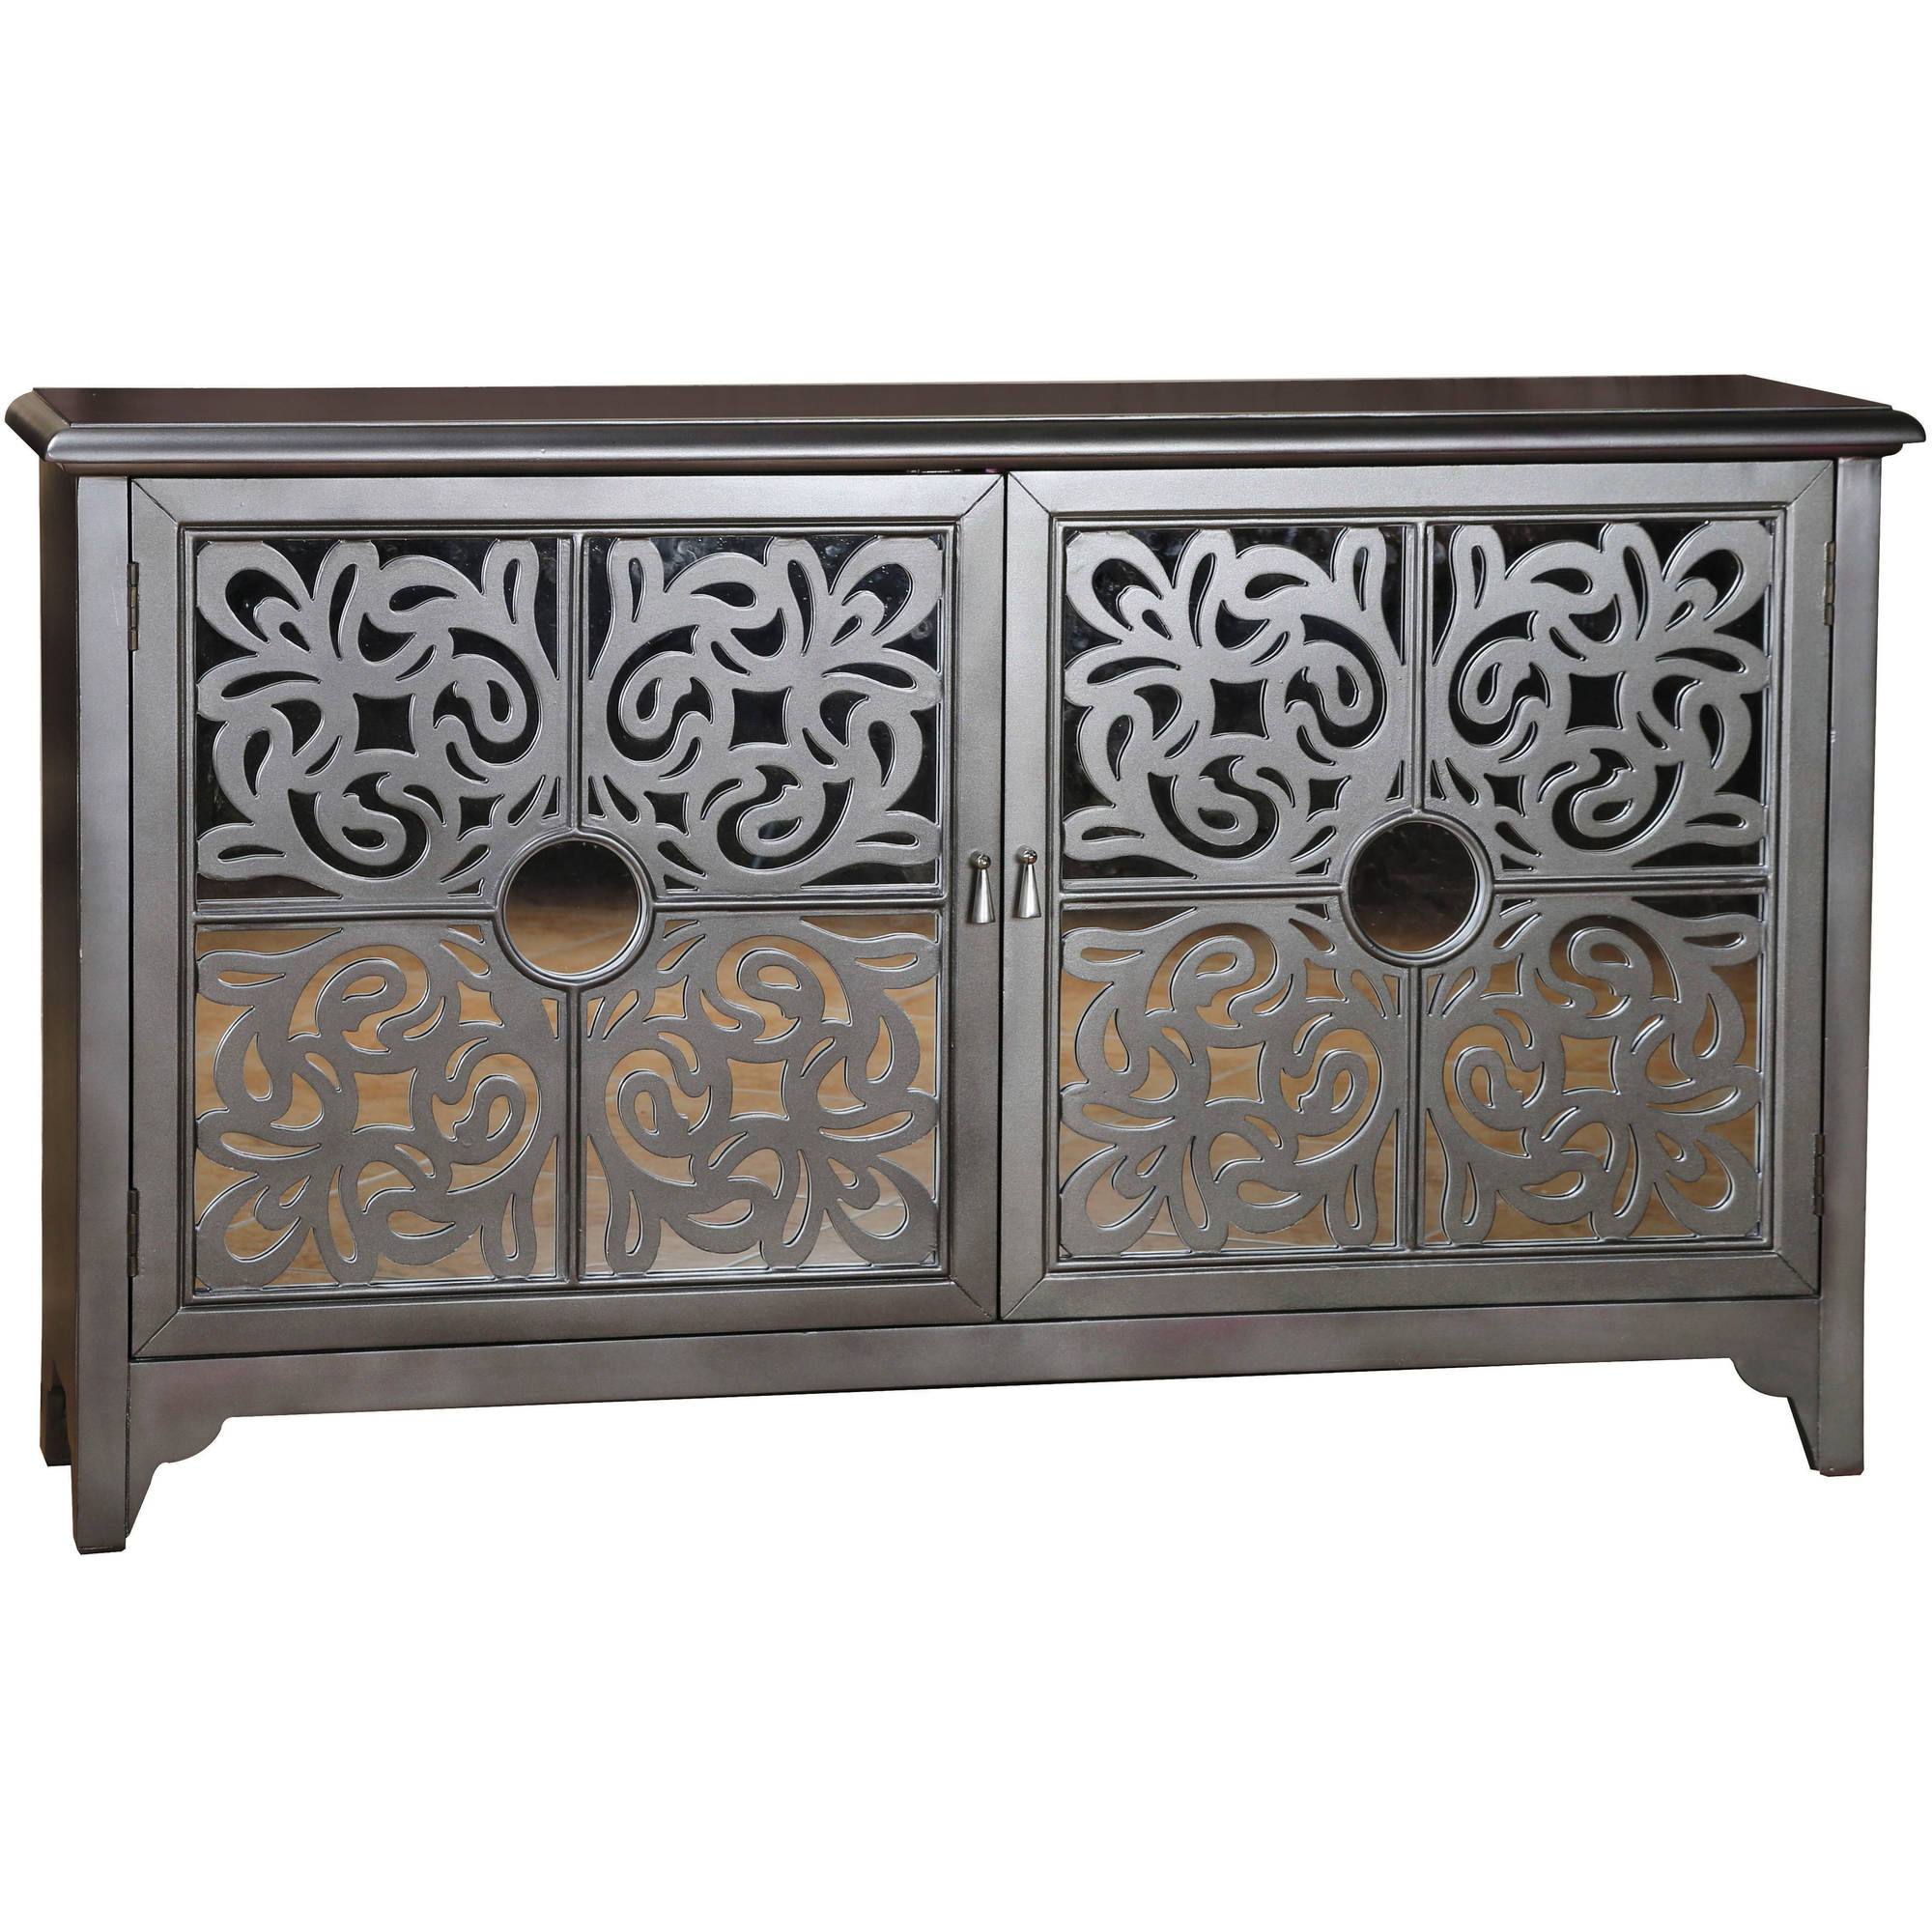 Silver Mirrored Overlay Door Credenza